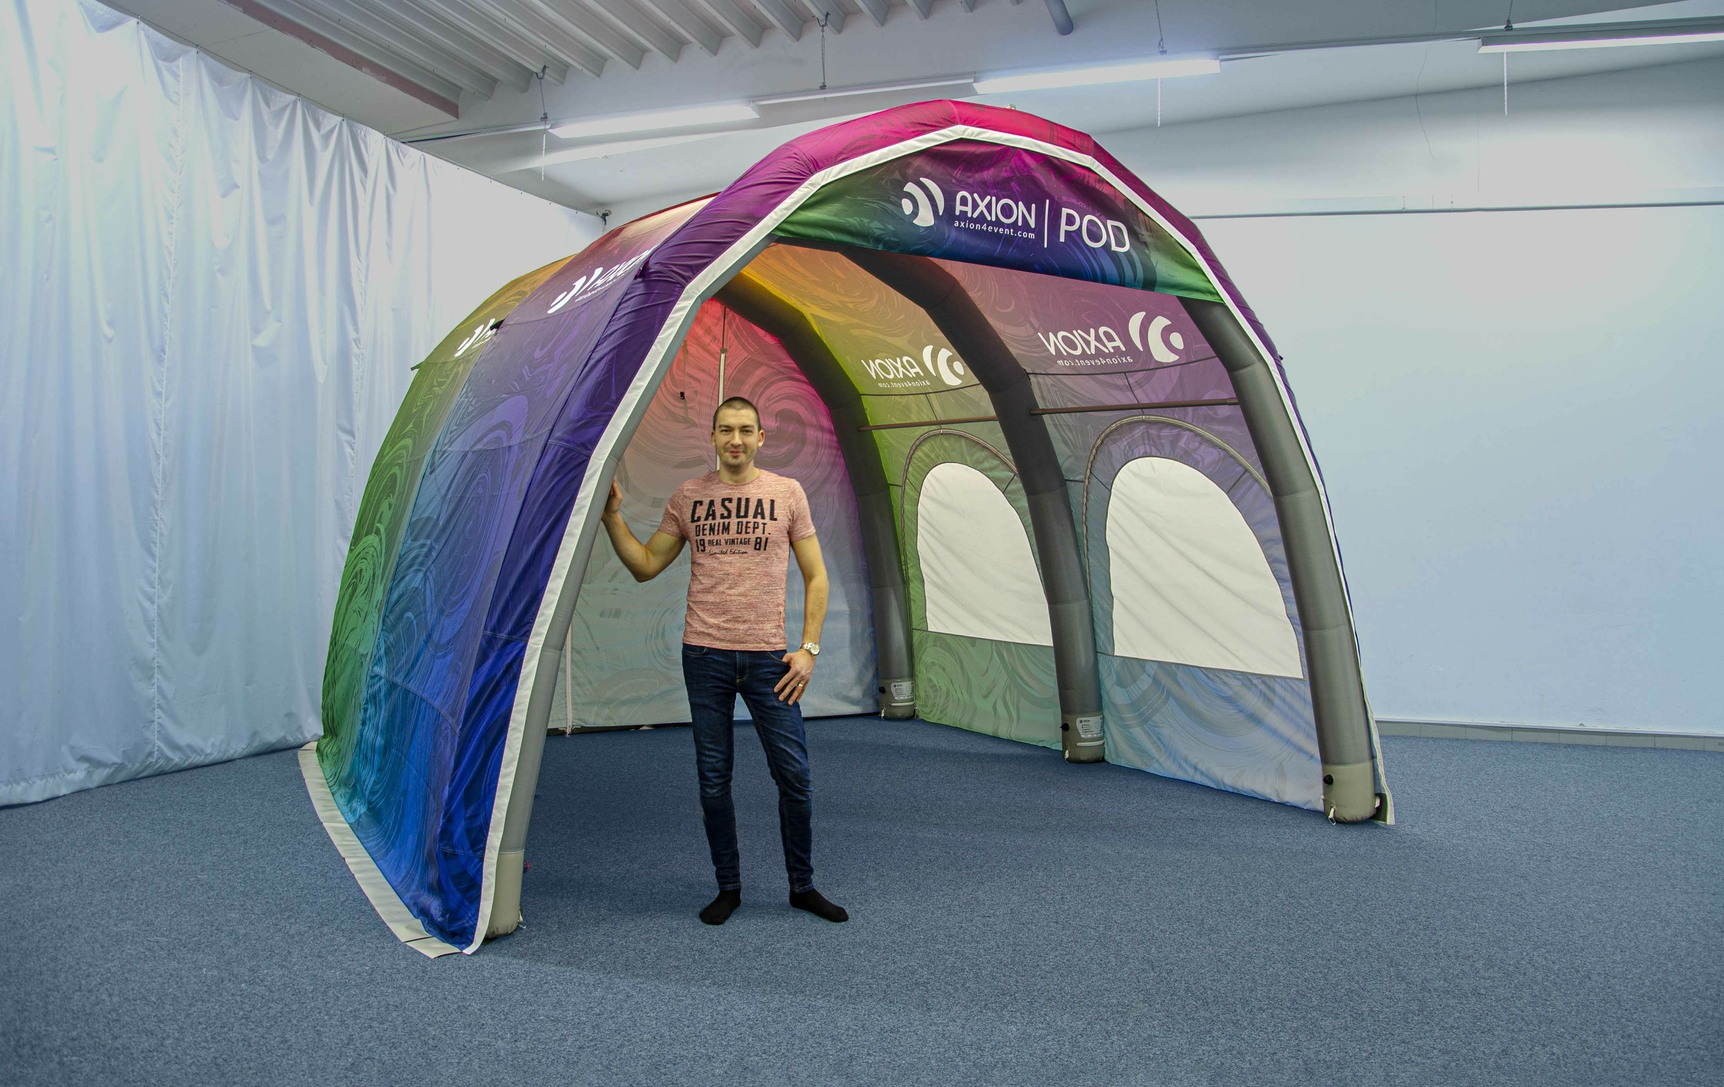 Axion Pod - Inflatable Tunnel Tent - Ideal for vehicle service & repairs, windscreen repairs, vehicle storage, event entrance tunnel, tent link tunnel, etc.